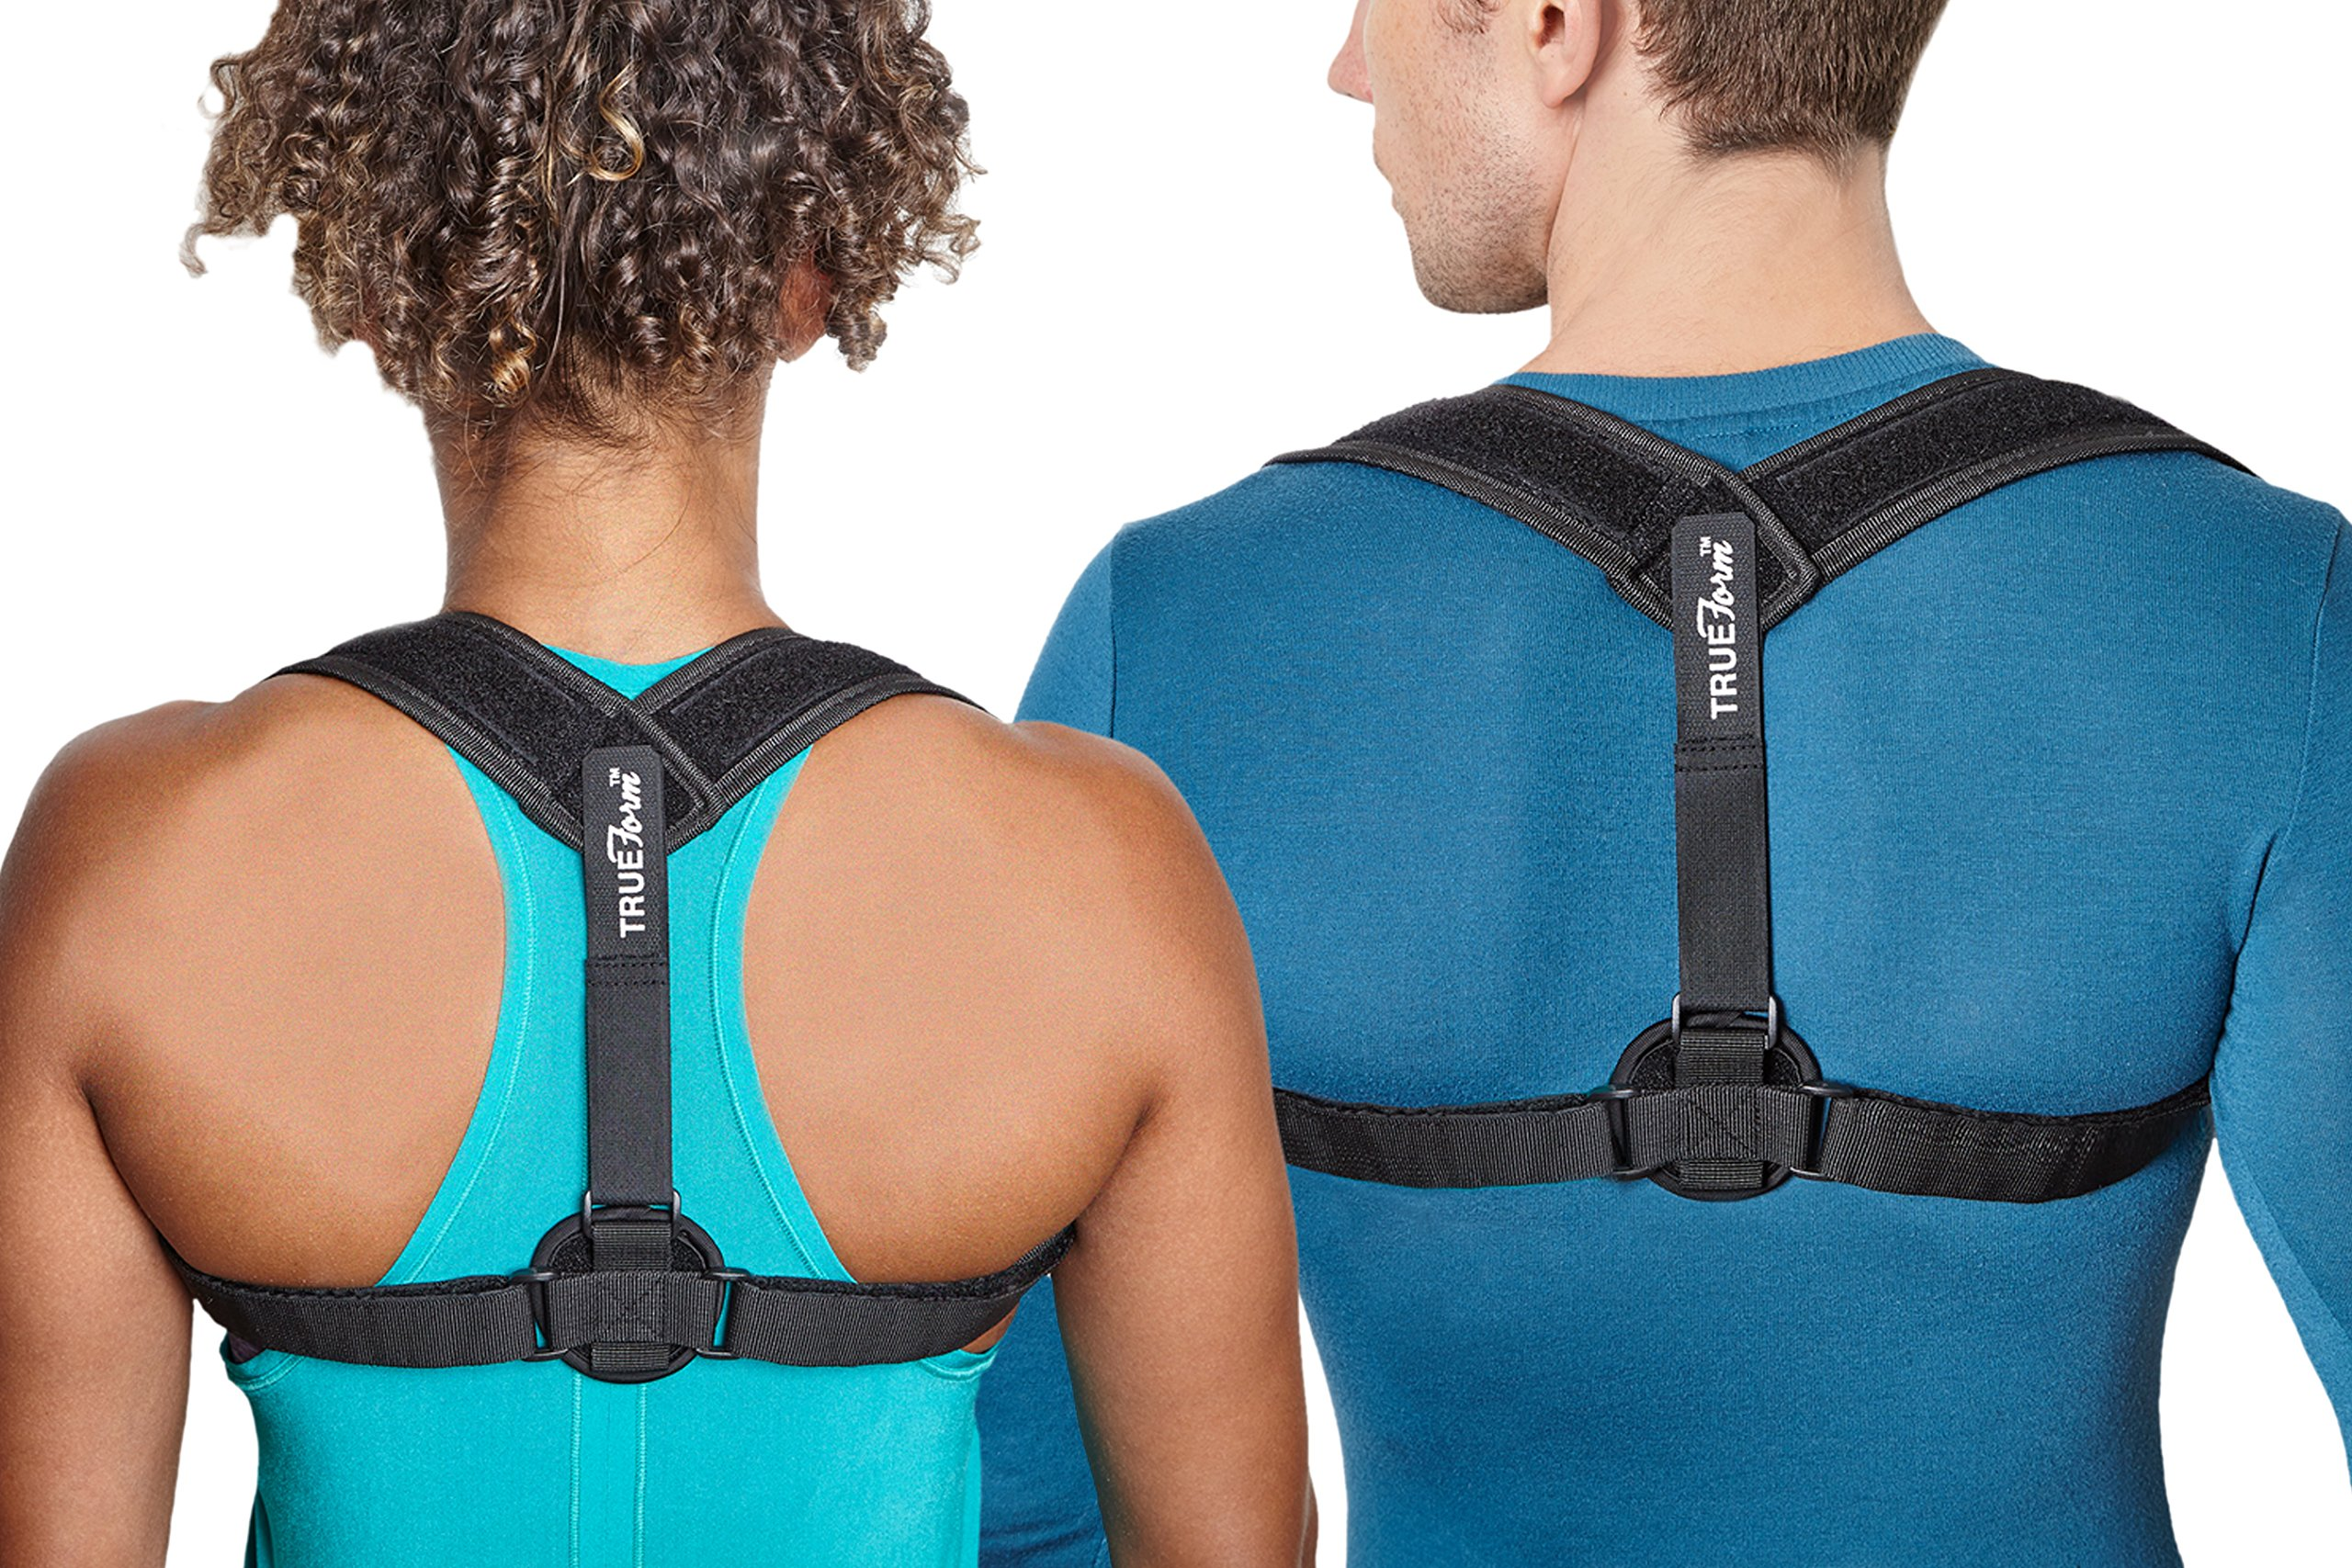 Posture Corrector Brace for Women & Men - Adjustable Clavicle Support Brace to Improve Posture and Relieve Upper Back Pain - Improve Posture and Retrain Muscles for Correct and Confident Posture